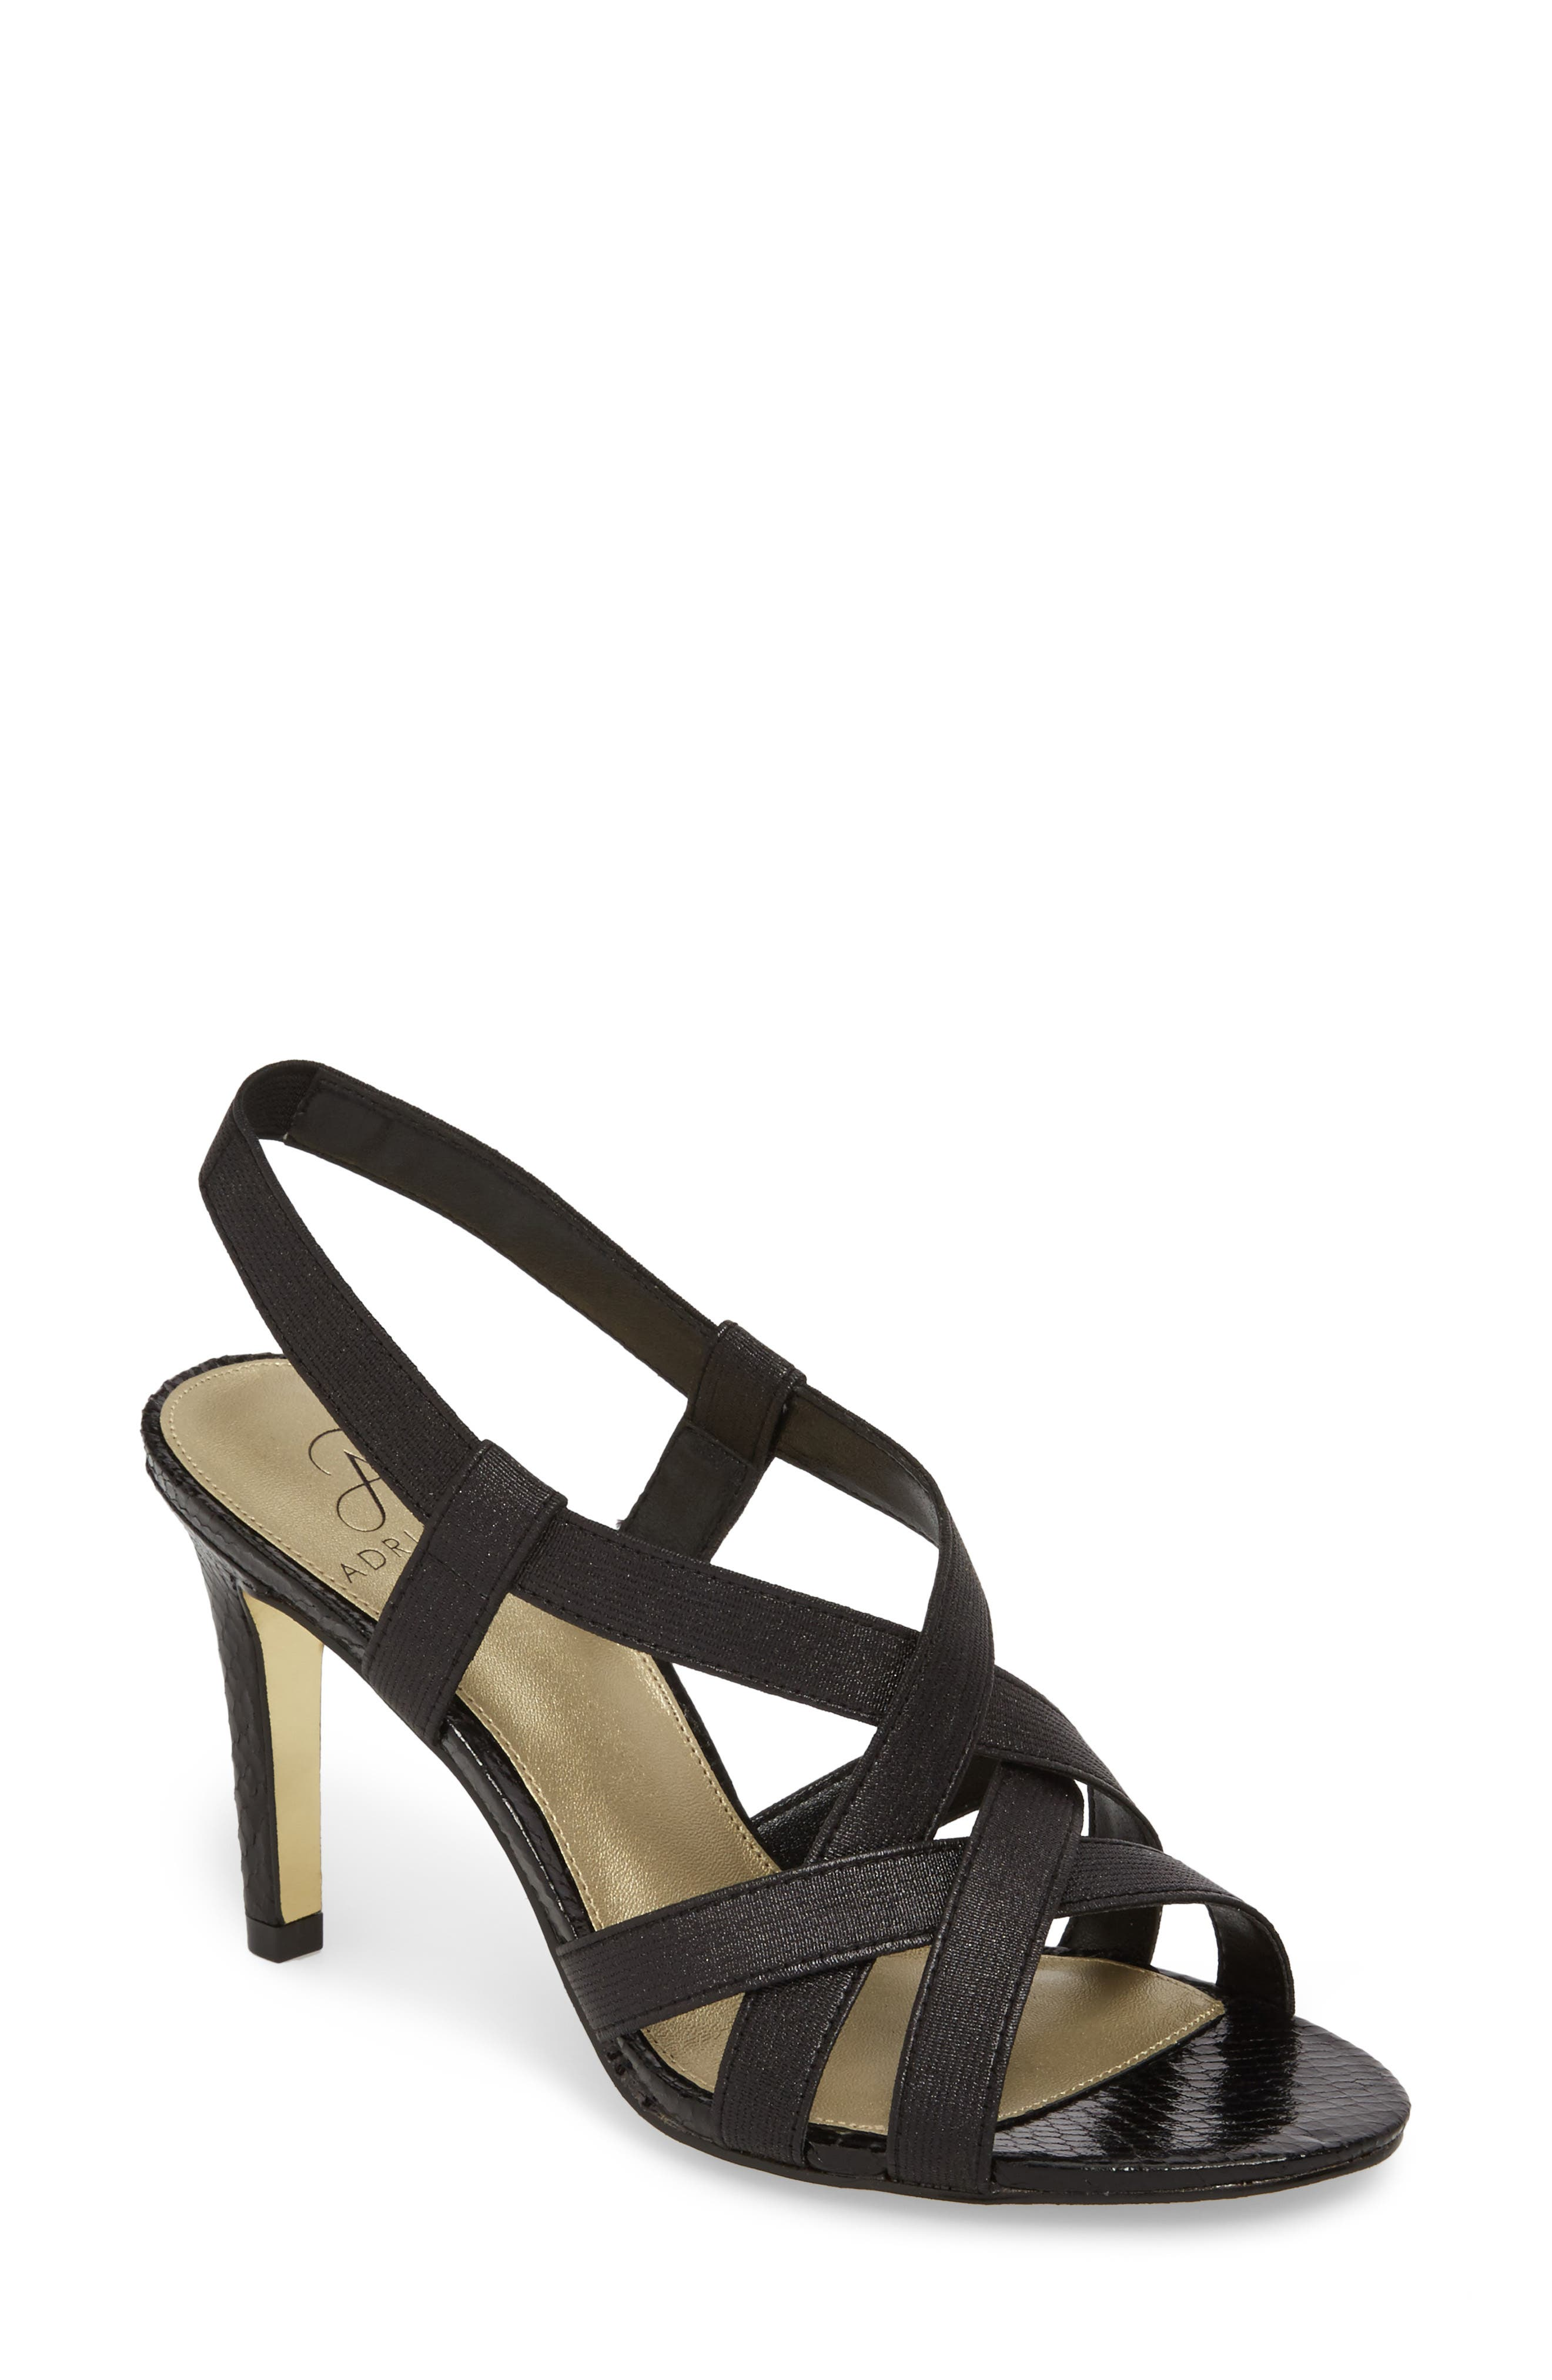 ADRIANNA PAPELL Addie Sandal, Main, color, 001